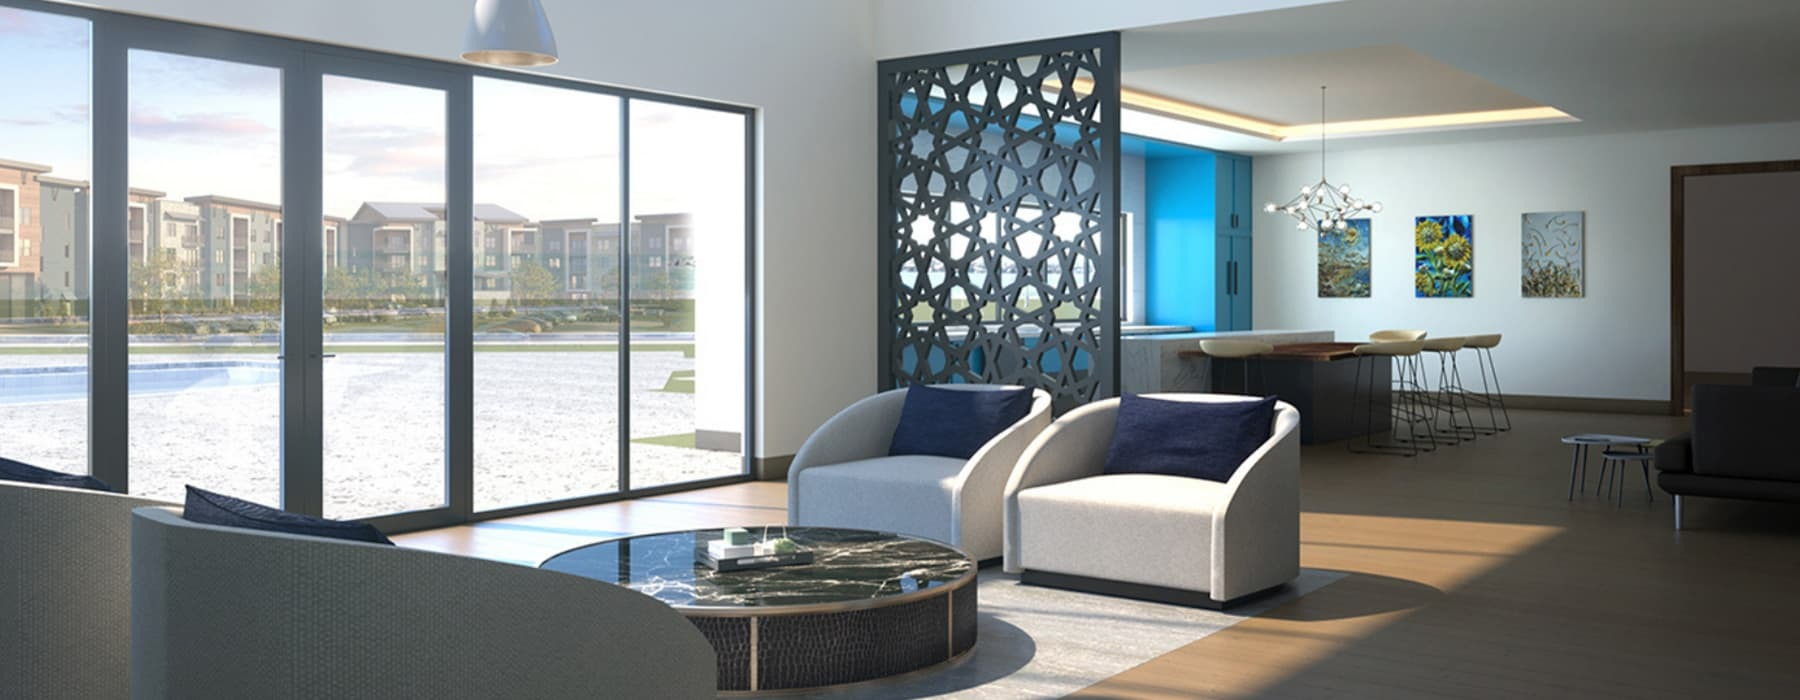 rendering of resident lounge with easy access to pool and ample seating spaces